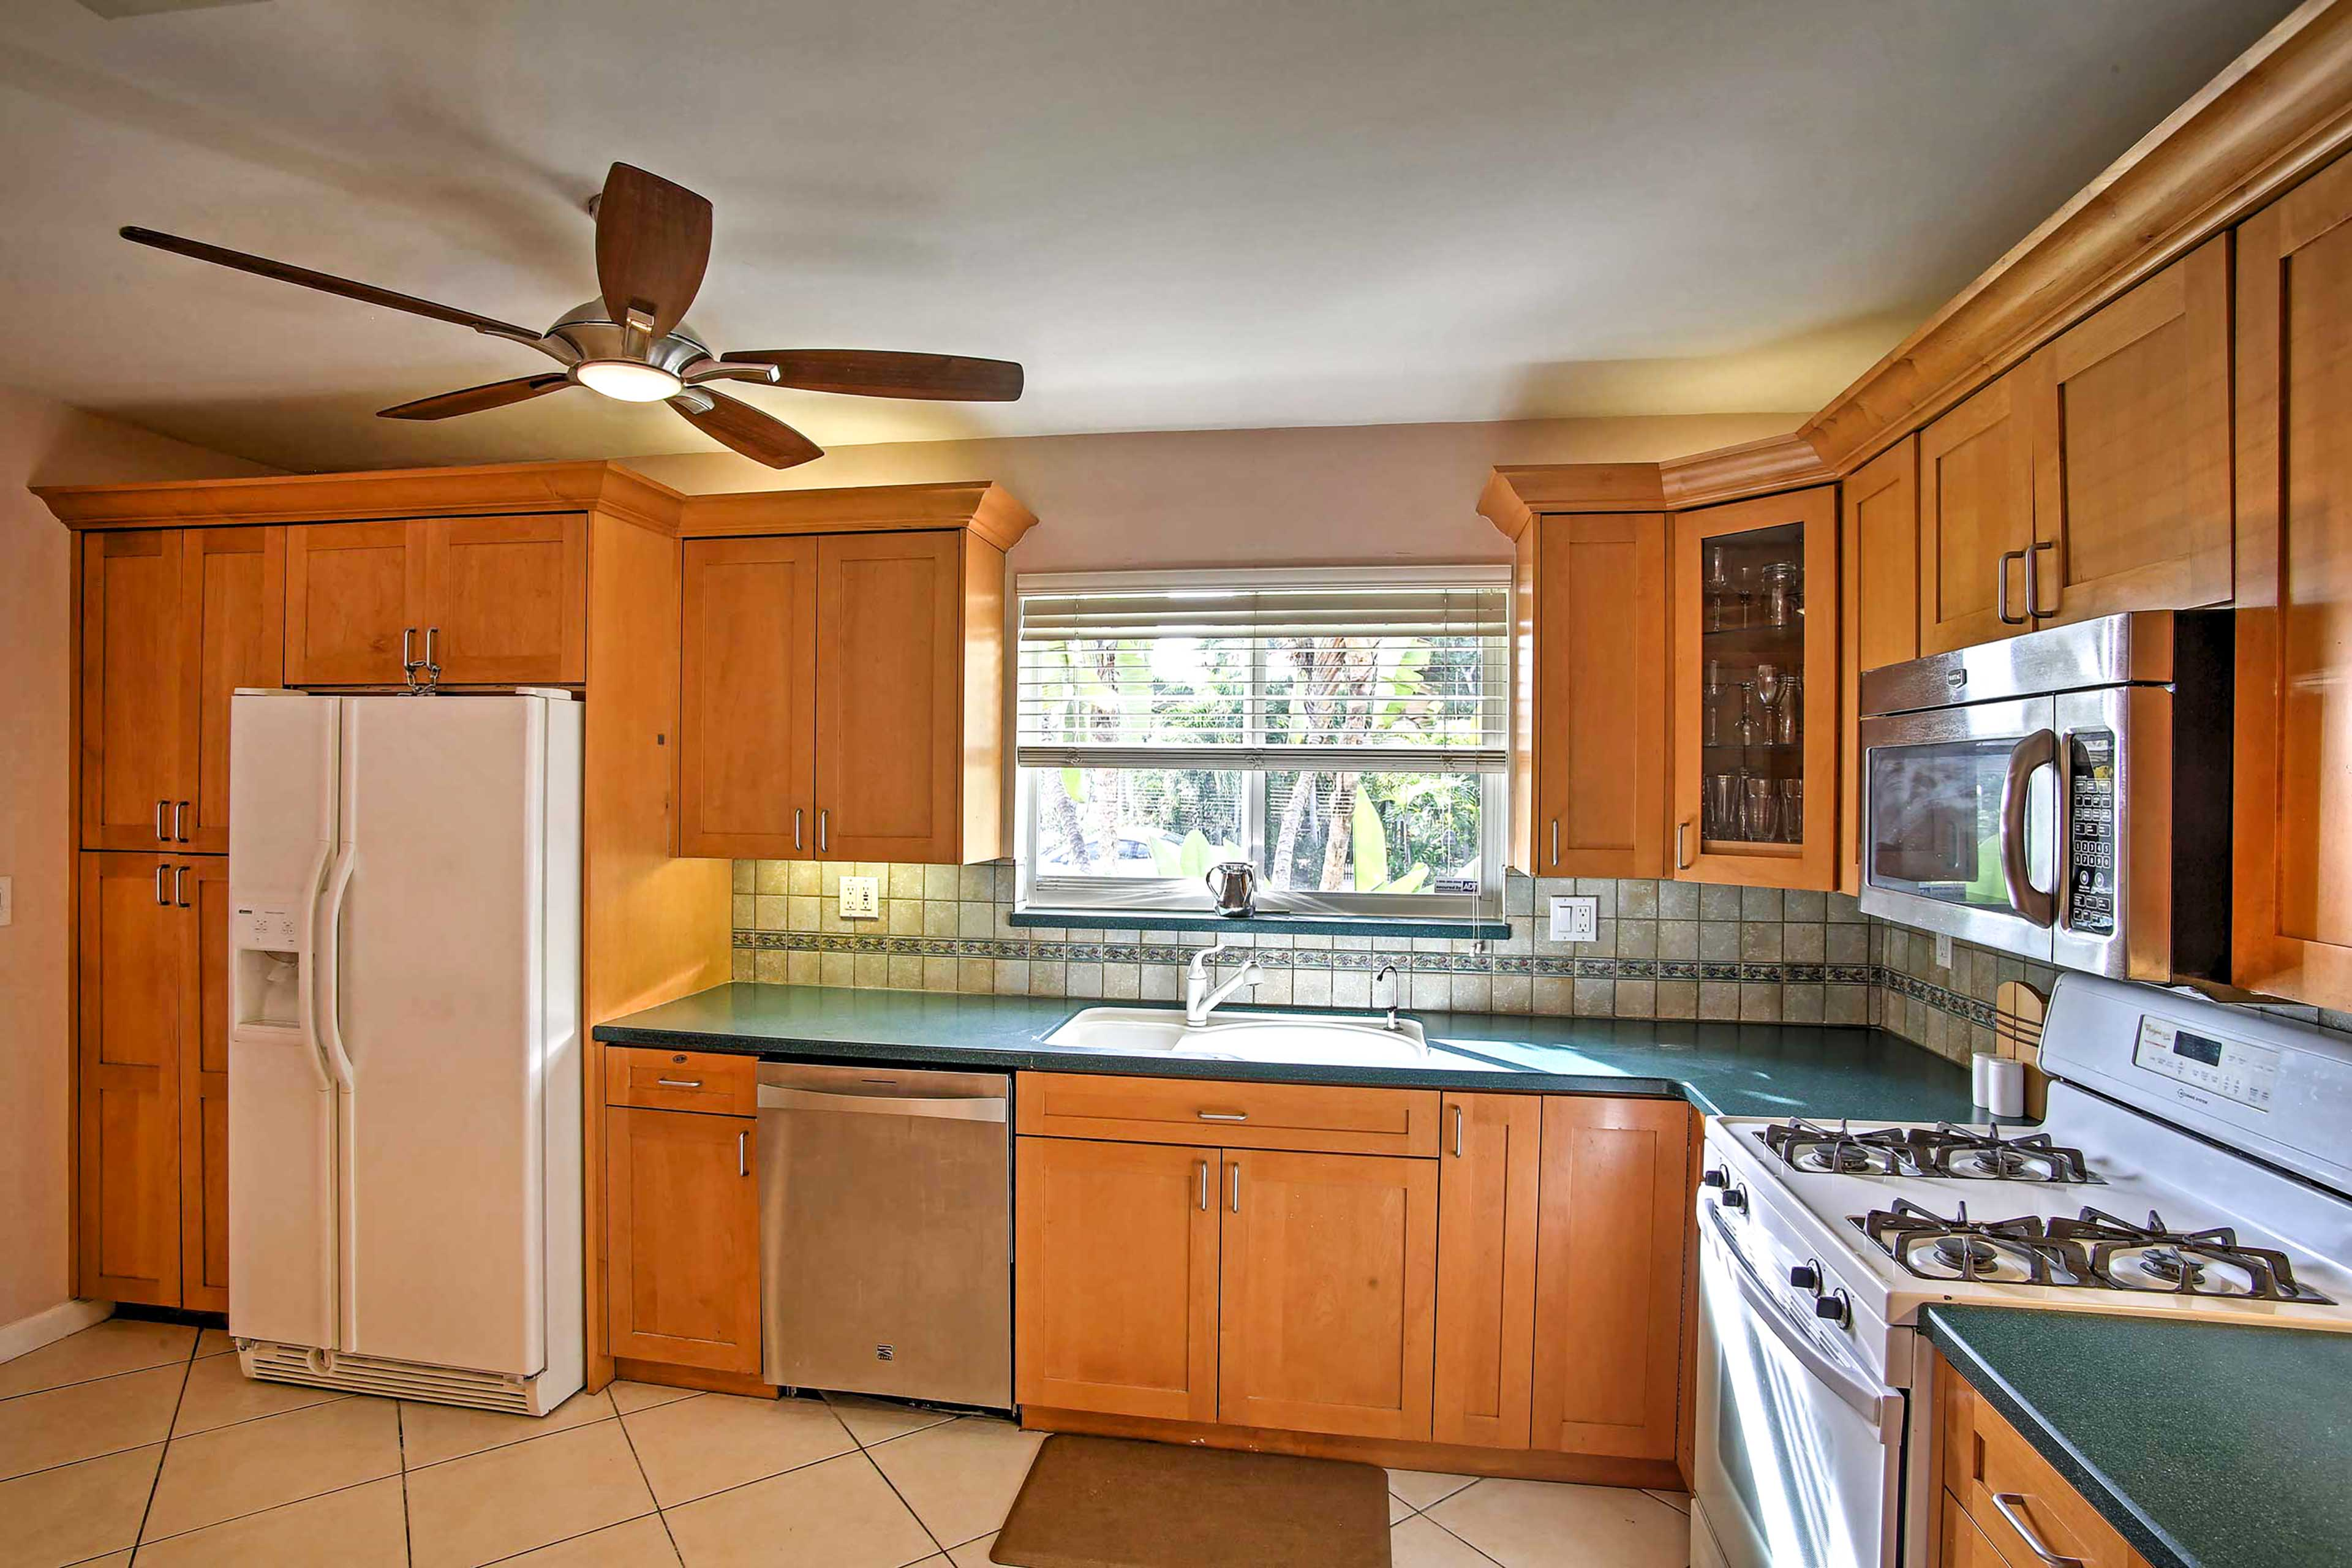 Prepare a delicious meal in the fully equipped kitchen.